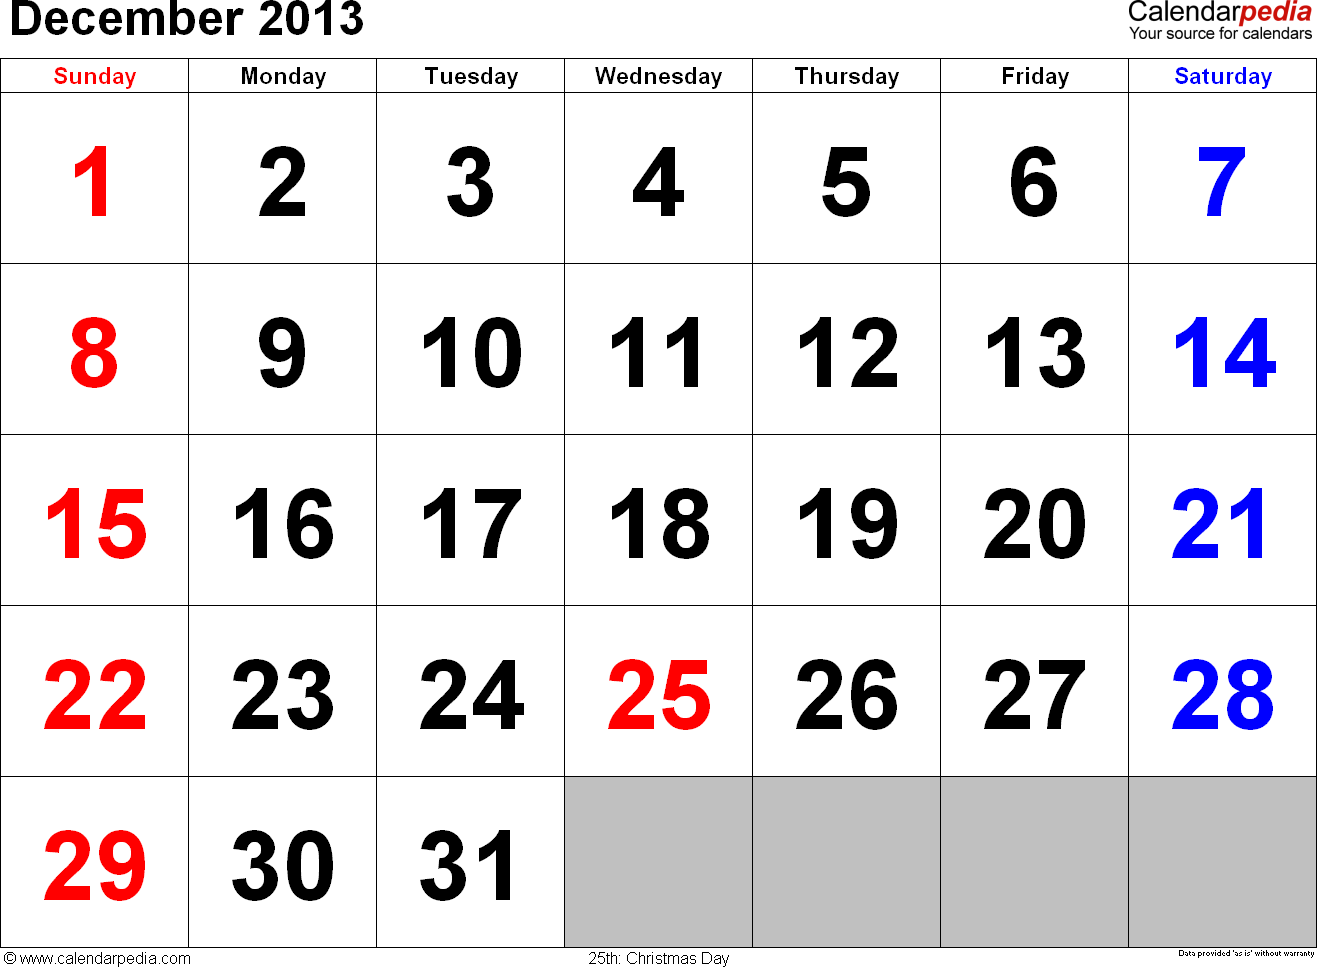 December 2013 calendar, landscape orientation, large numerals, available as printable templates for Word, Excel and PDF